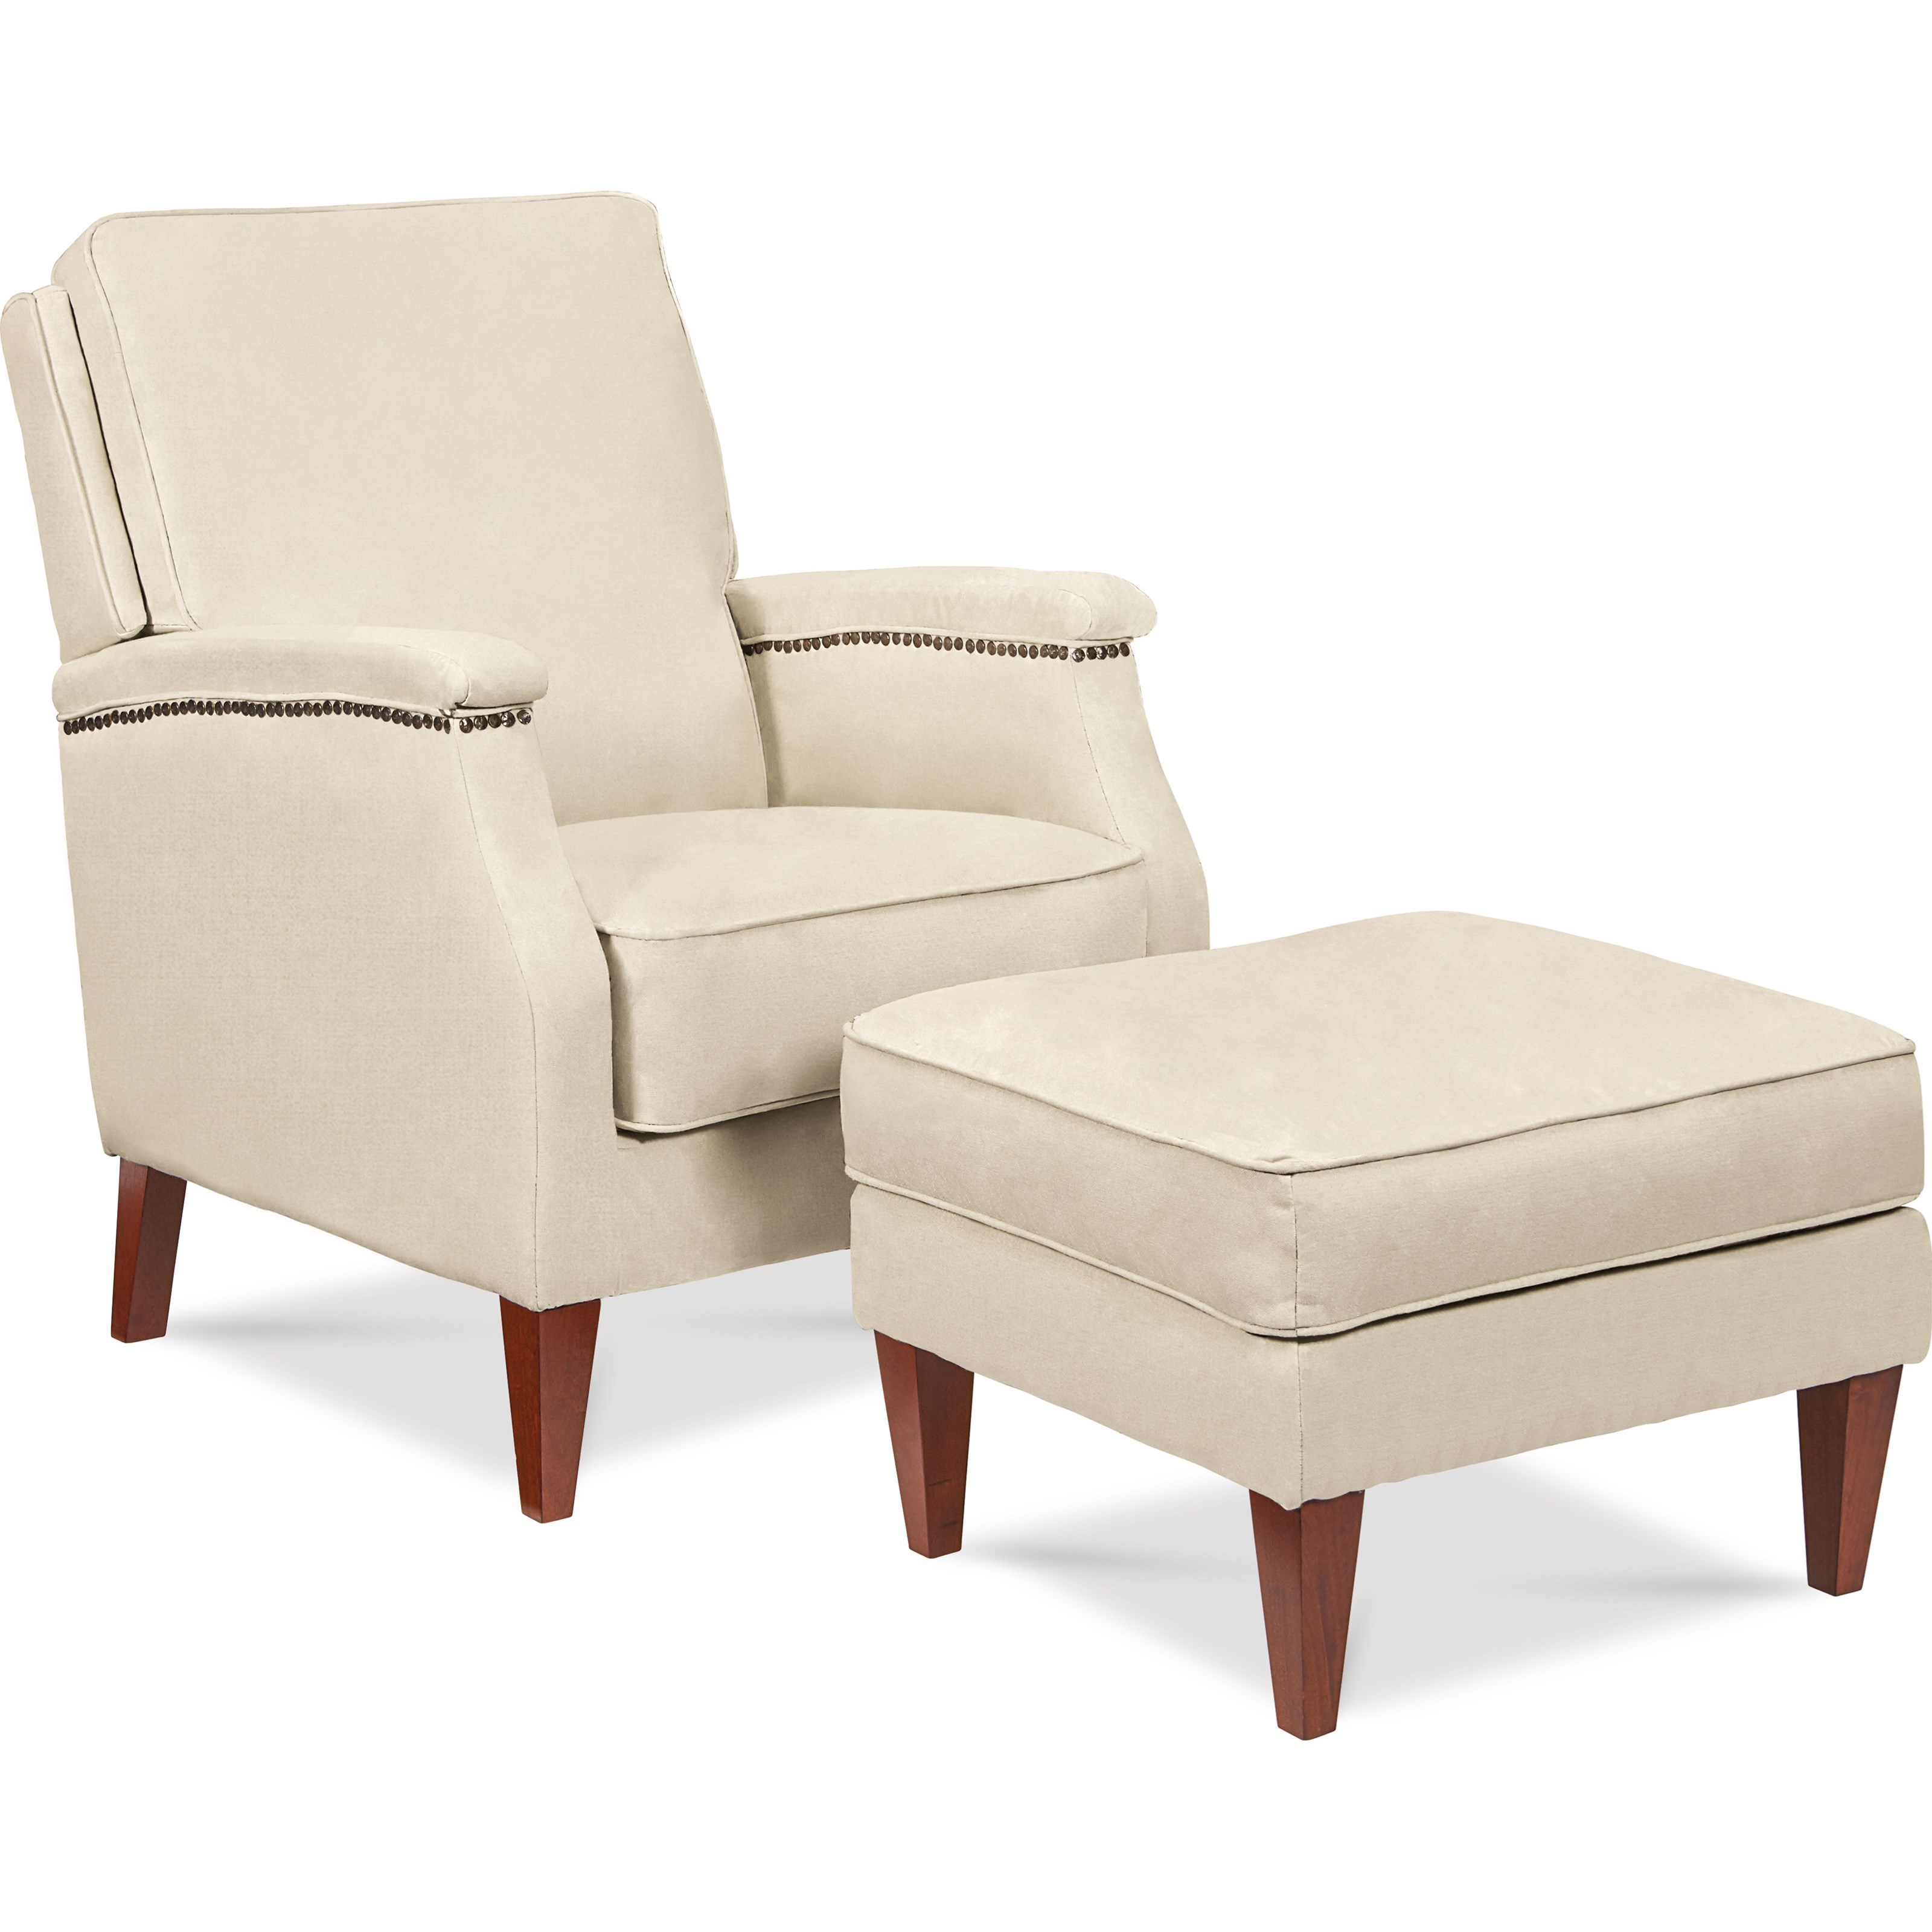 Cambridge Press Back Recliner & Ottoman by La-Z-Boy at Bullard Furniture